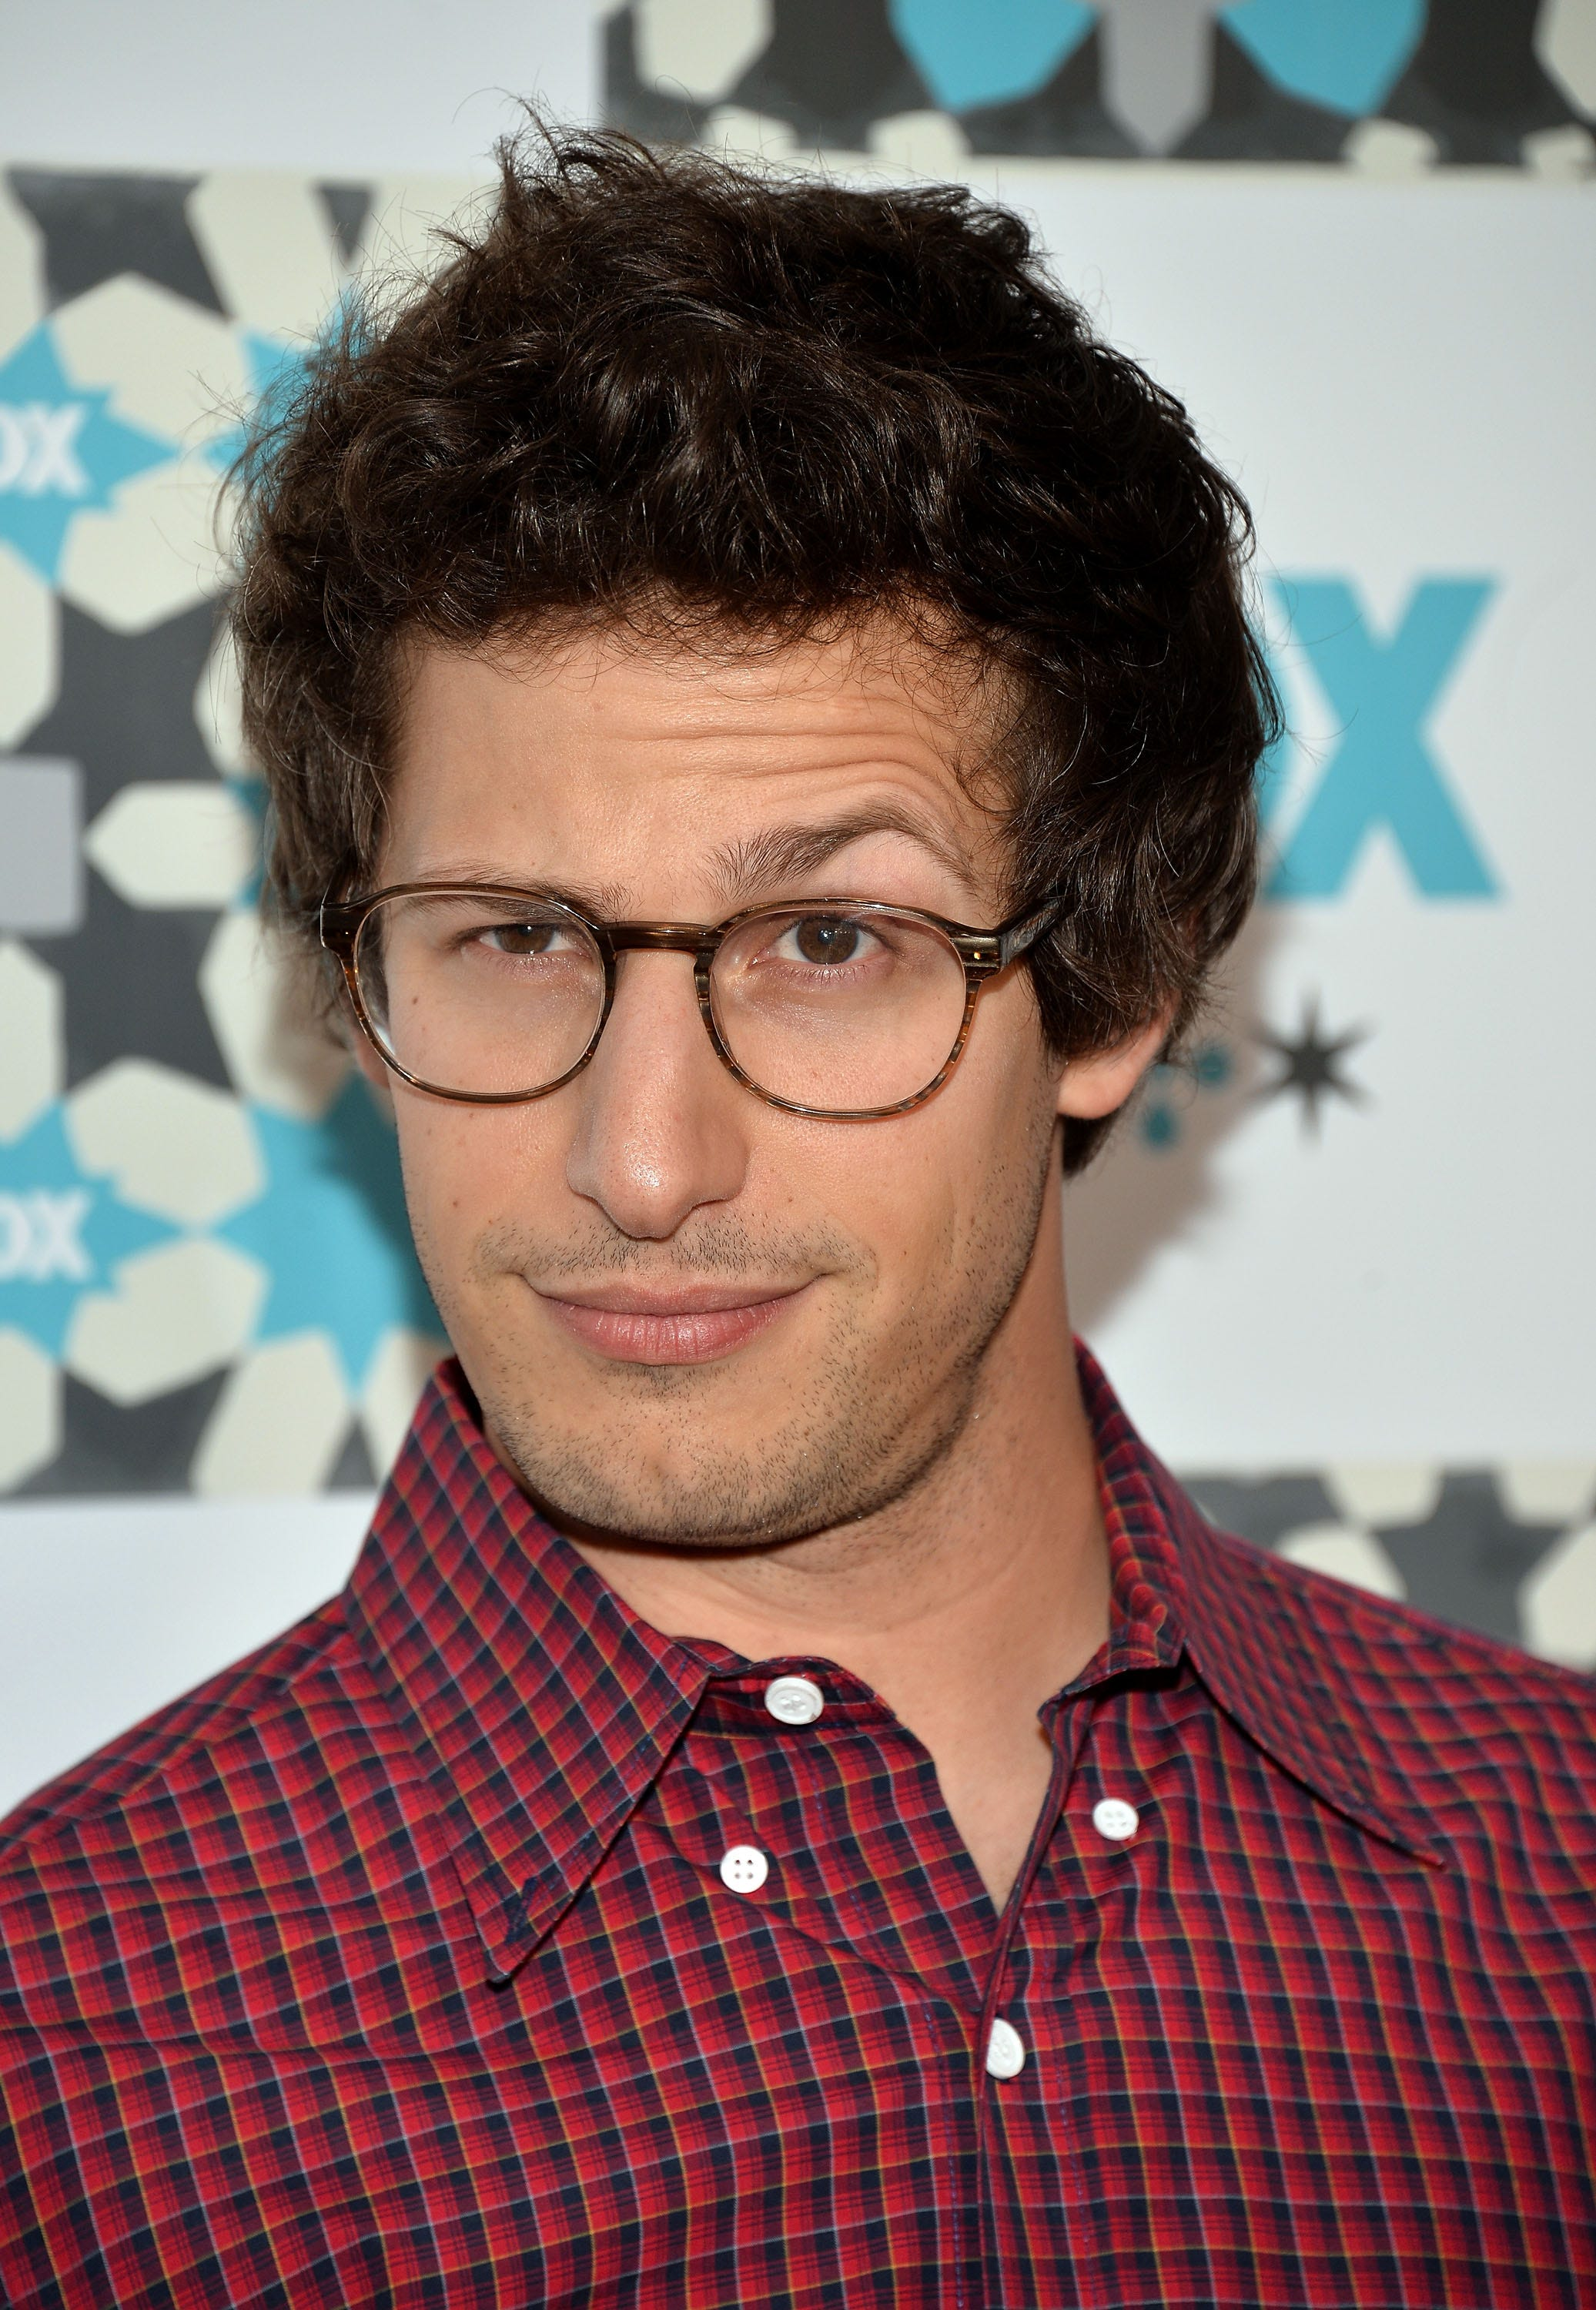 Andy Samberg to host Emmy Awards